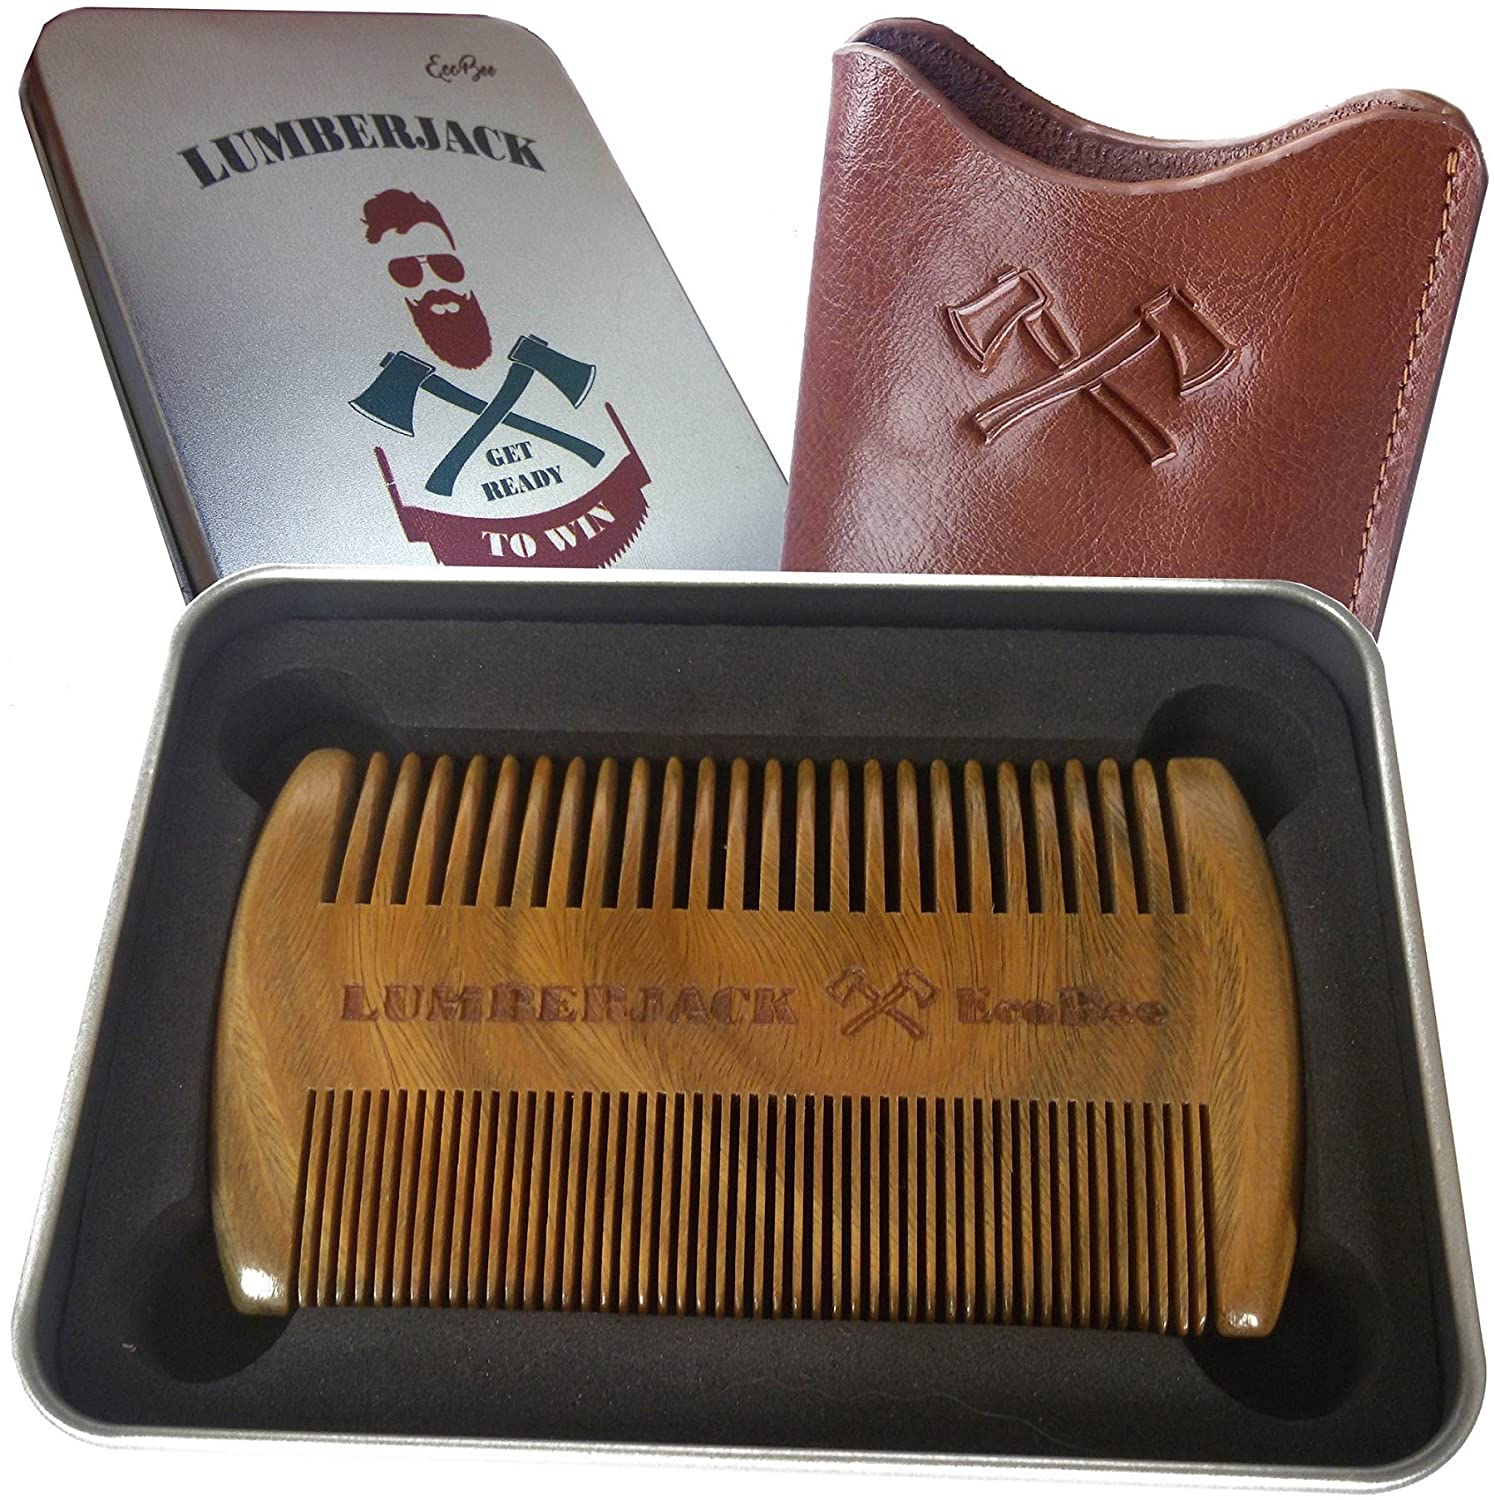 Beard Comb Dual Action + eBook, Men gift - Wooden Comb for beard & Real leather pouch, Pocket size, Sandalwood, Fine - Coarse Teeth, Antistatic wood comb, Perfect for Beard Oils & Balms EcoBee LUMBERJACK